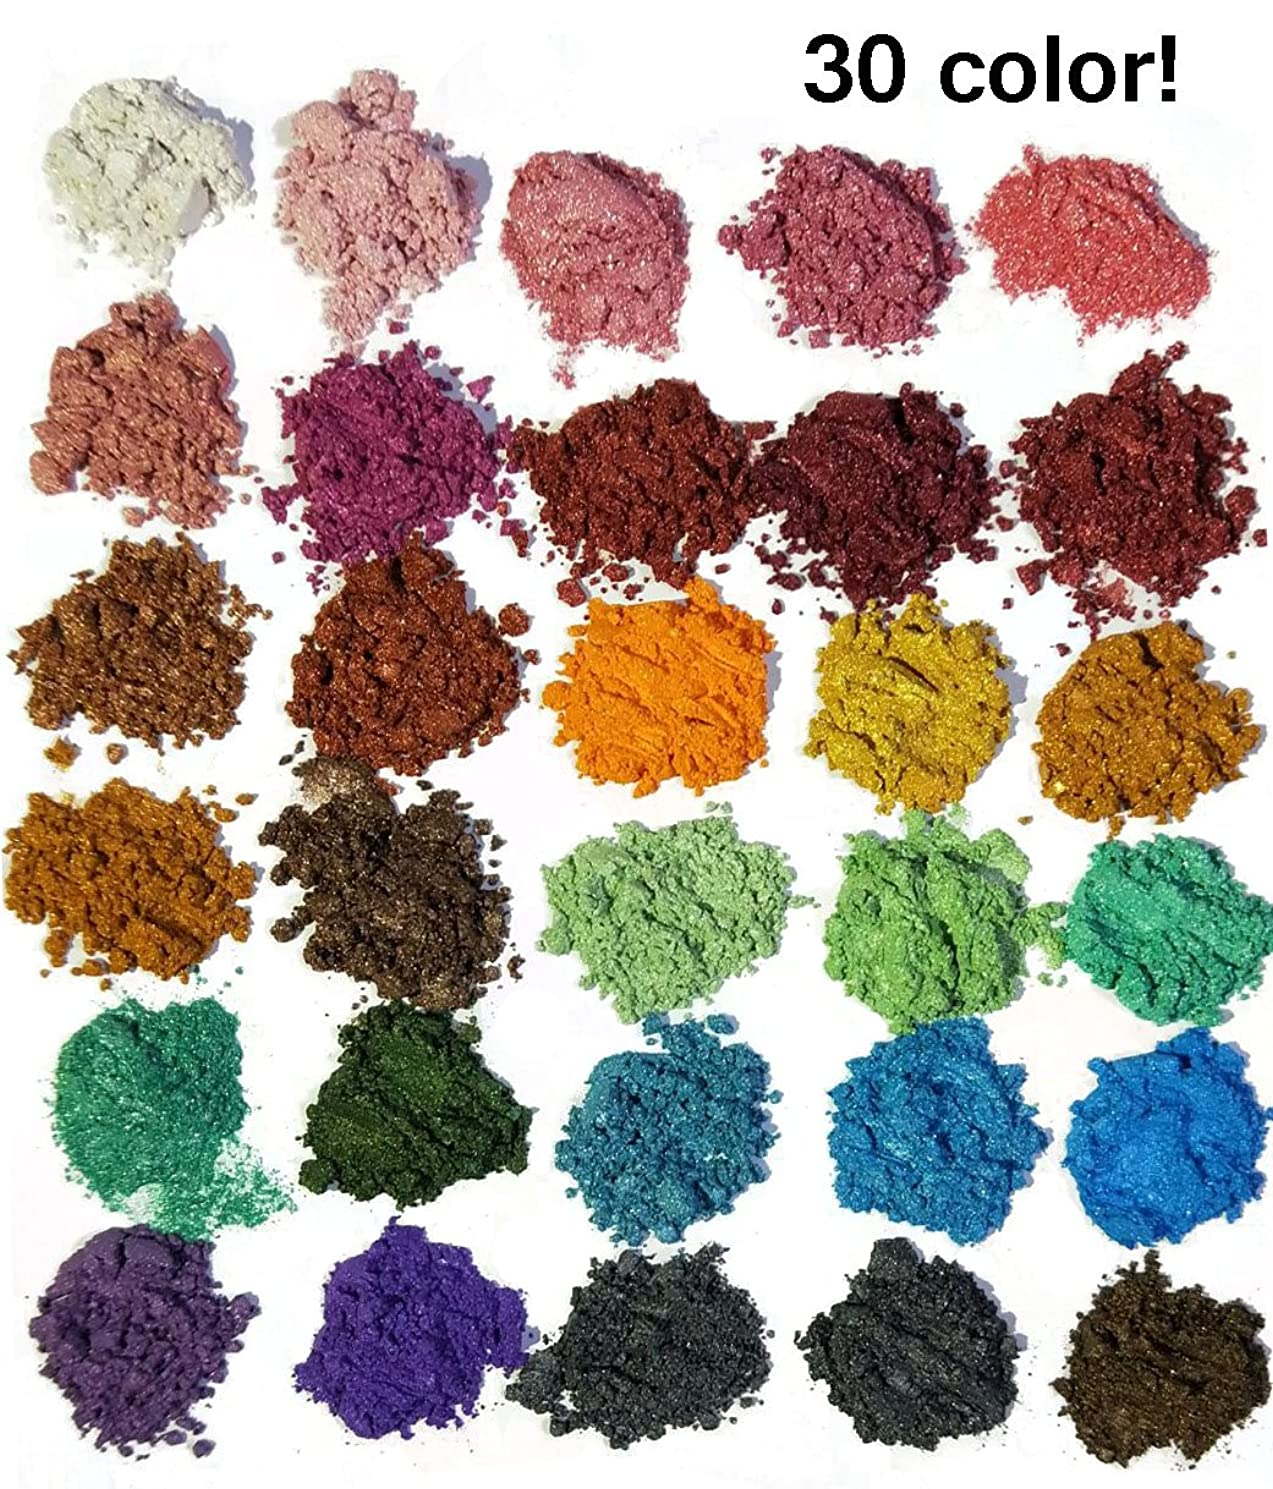 30 Color Pigments Shimmer Mica Powder - DIY Soap Making, Candle Making,Resin Dye, Mica Powder Organic for Soap Molds (5 Grams Each, 150 Grams Total)